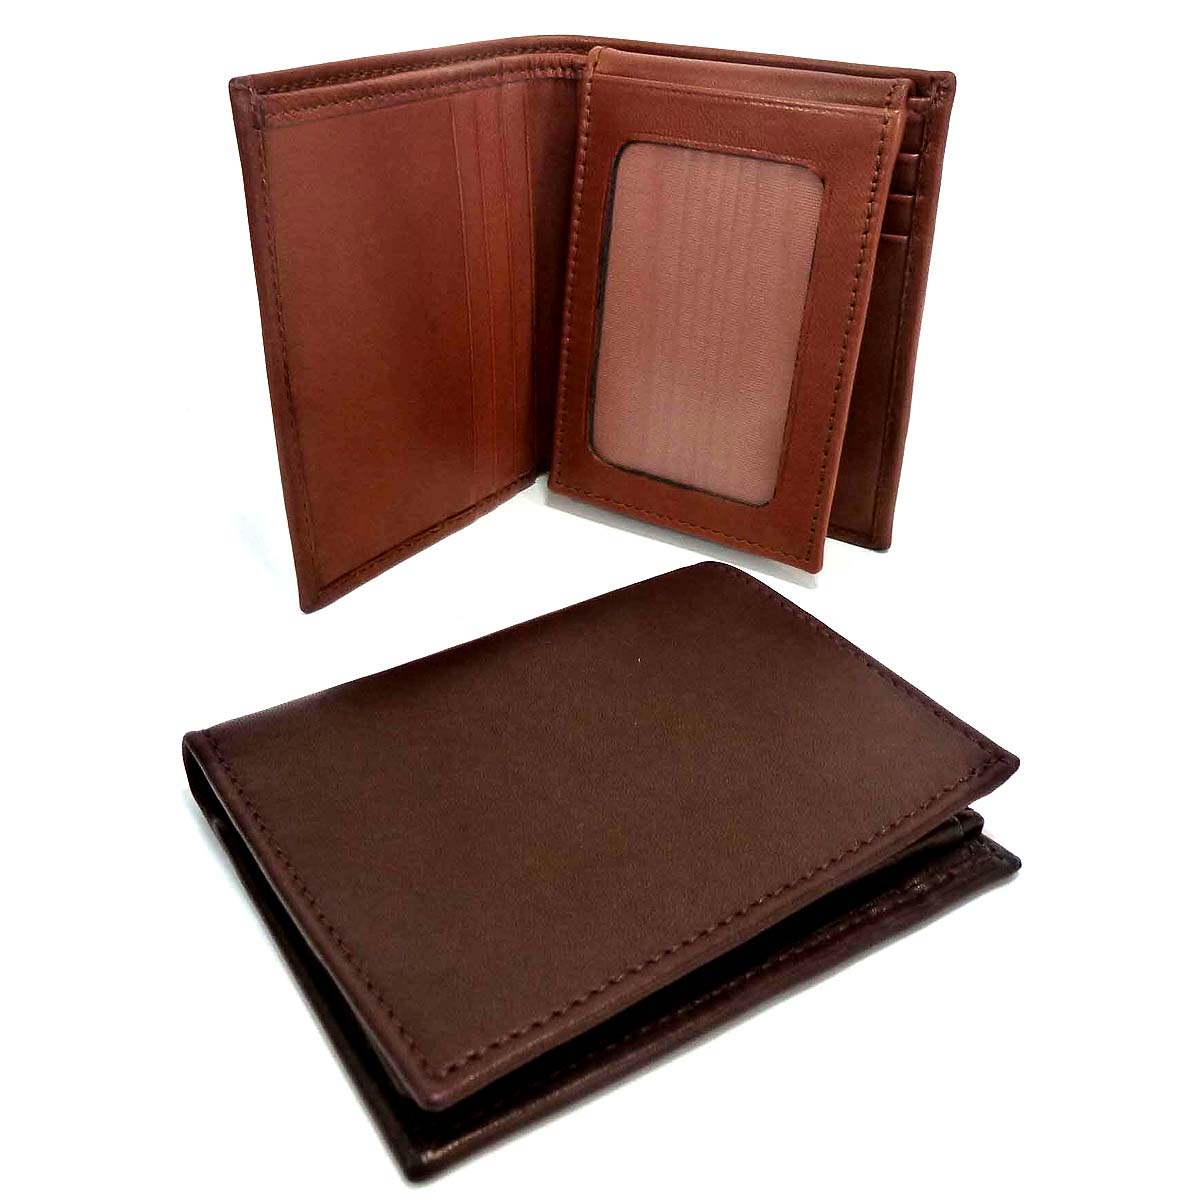 1317  men's wallet 9 cards by Bottega Fiorentina